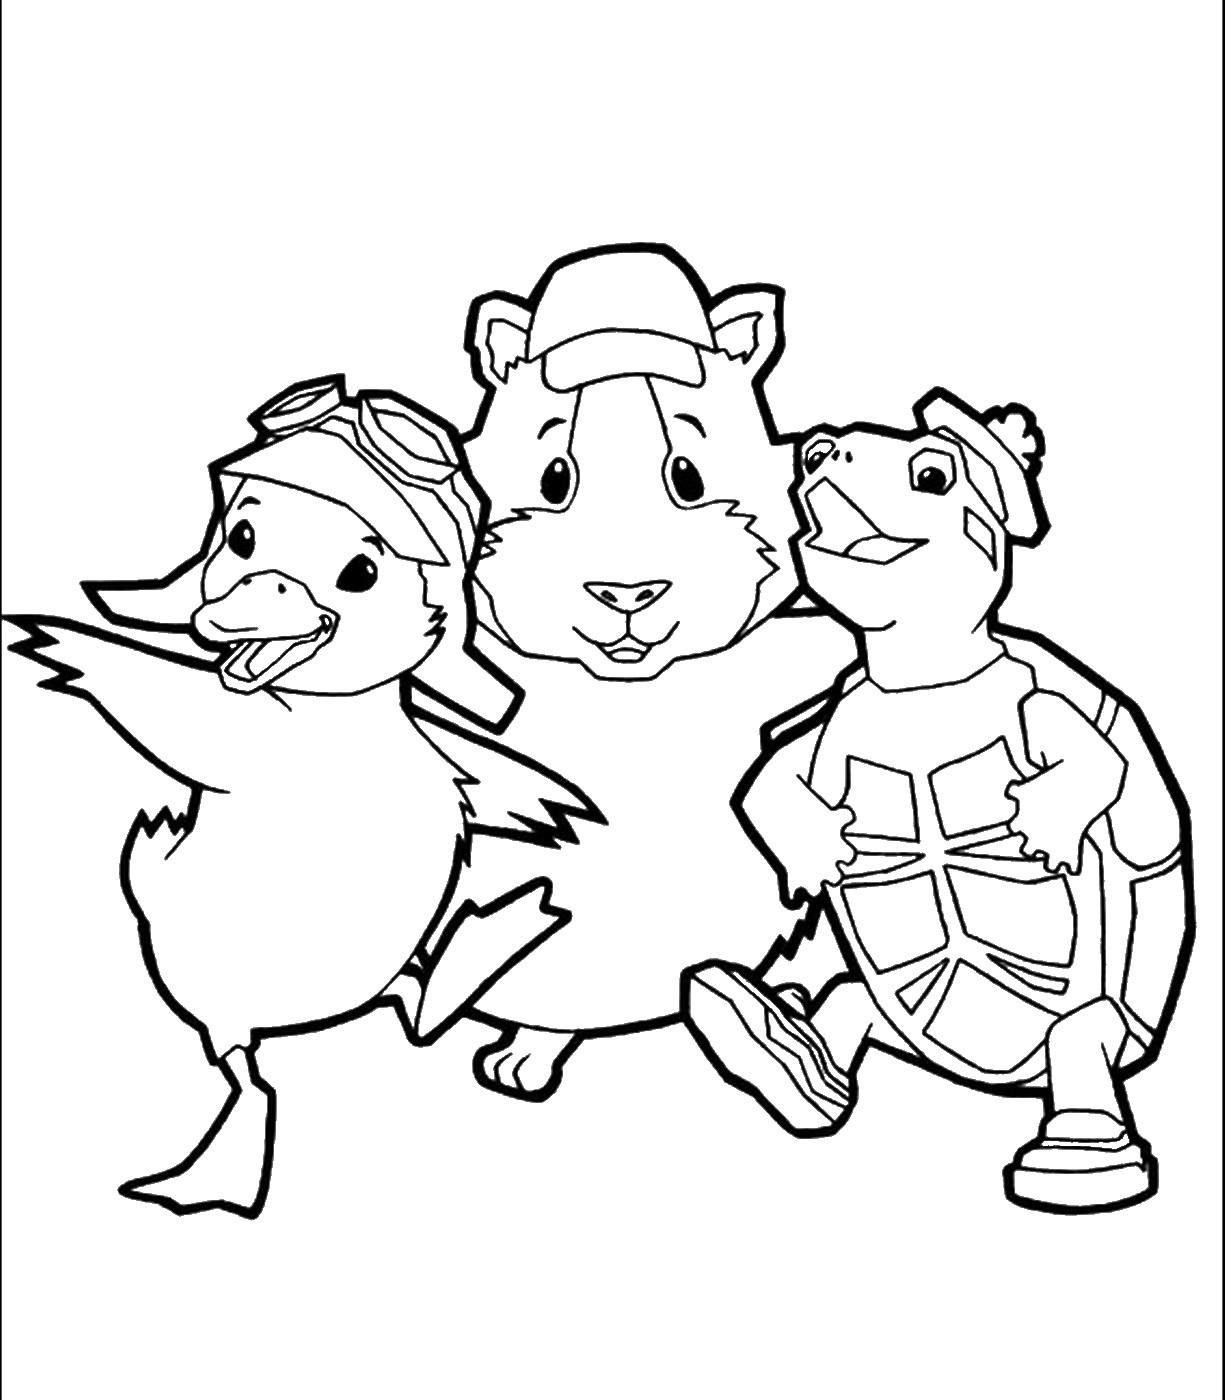 wonder pets coloring pages - the gallery for nick jr face yellow